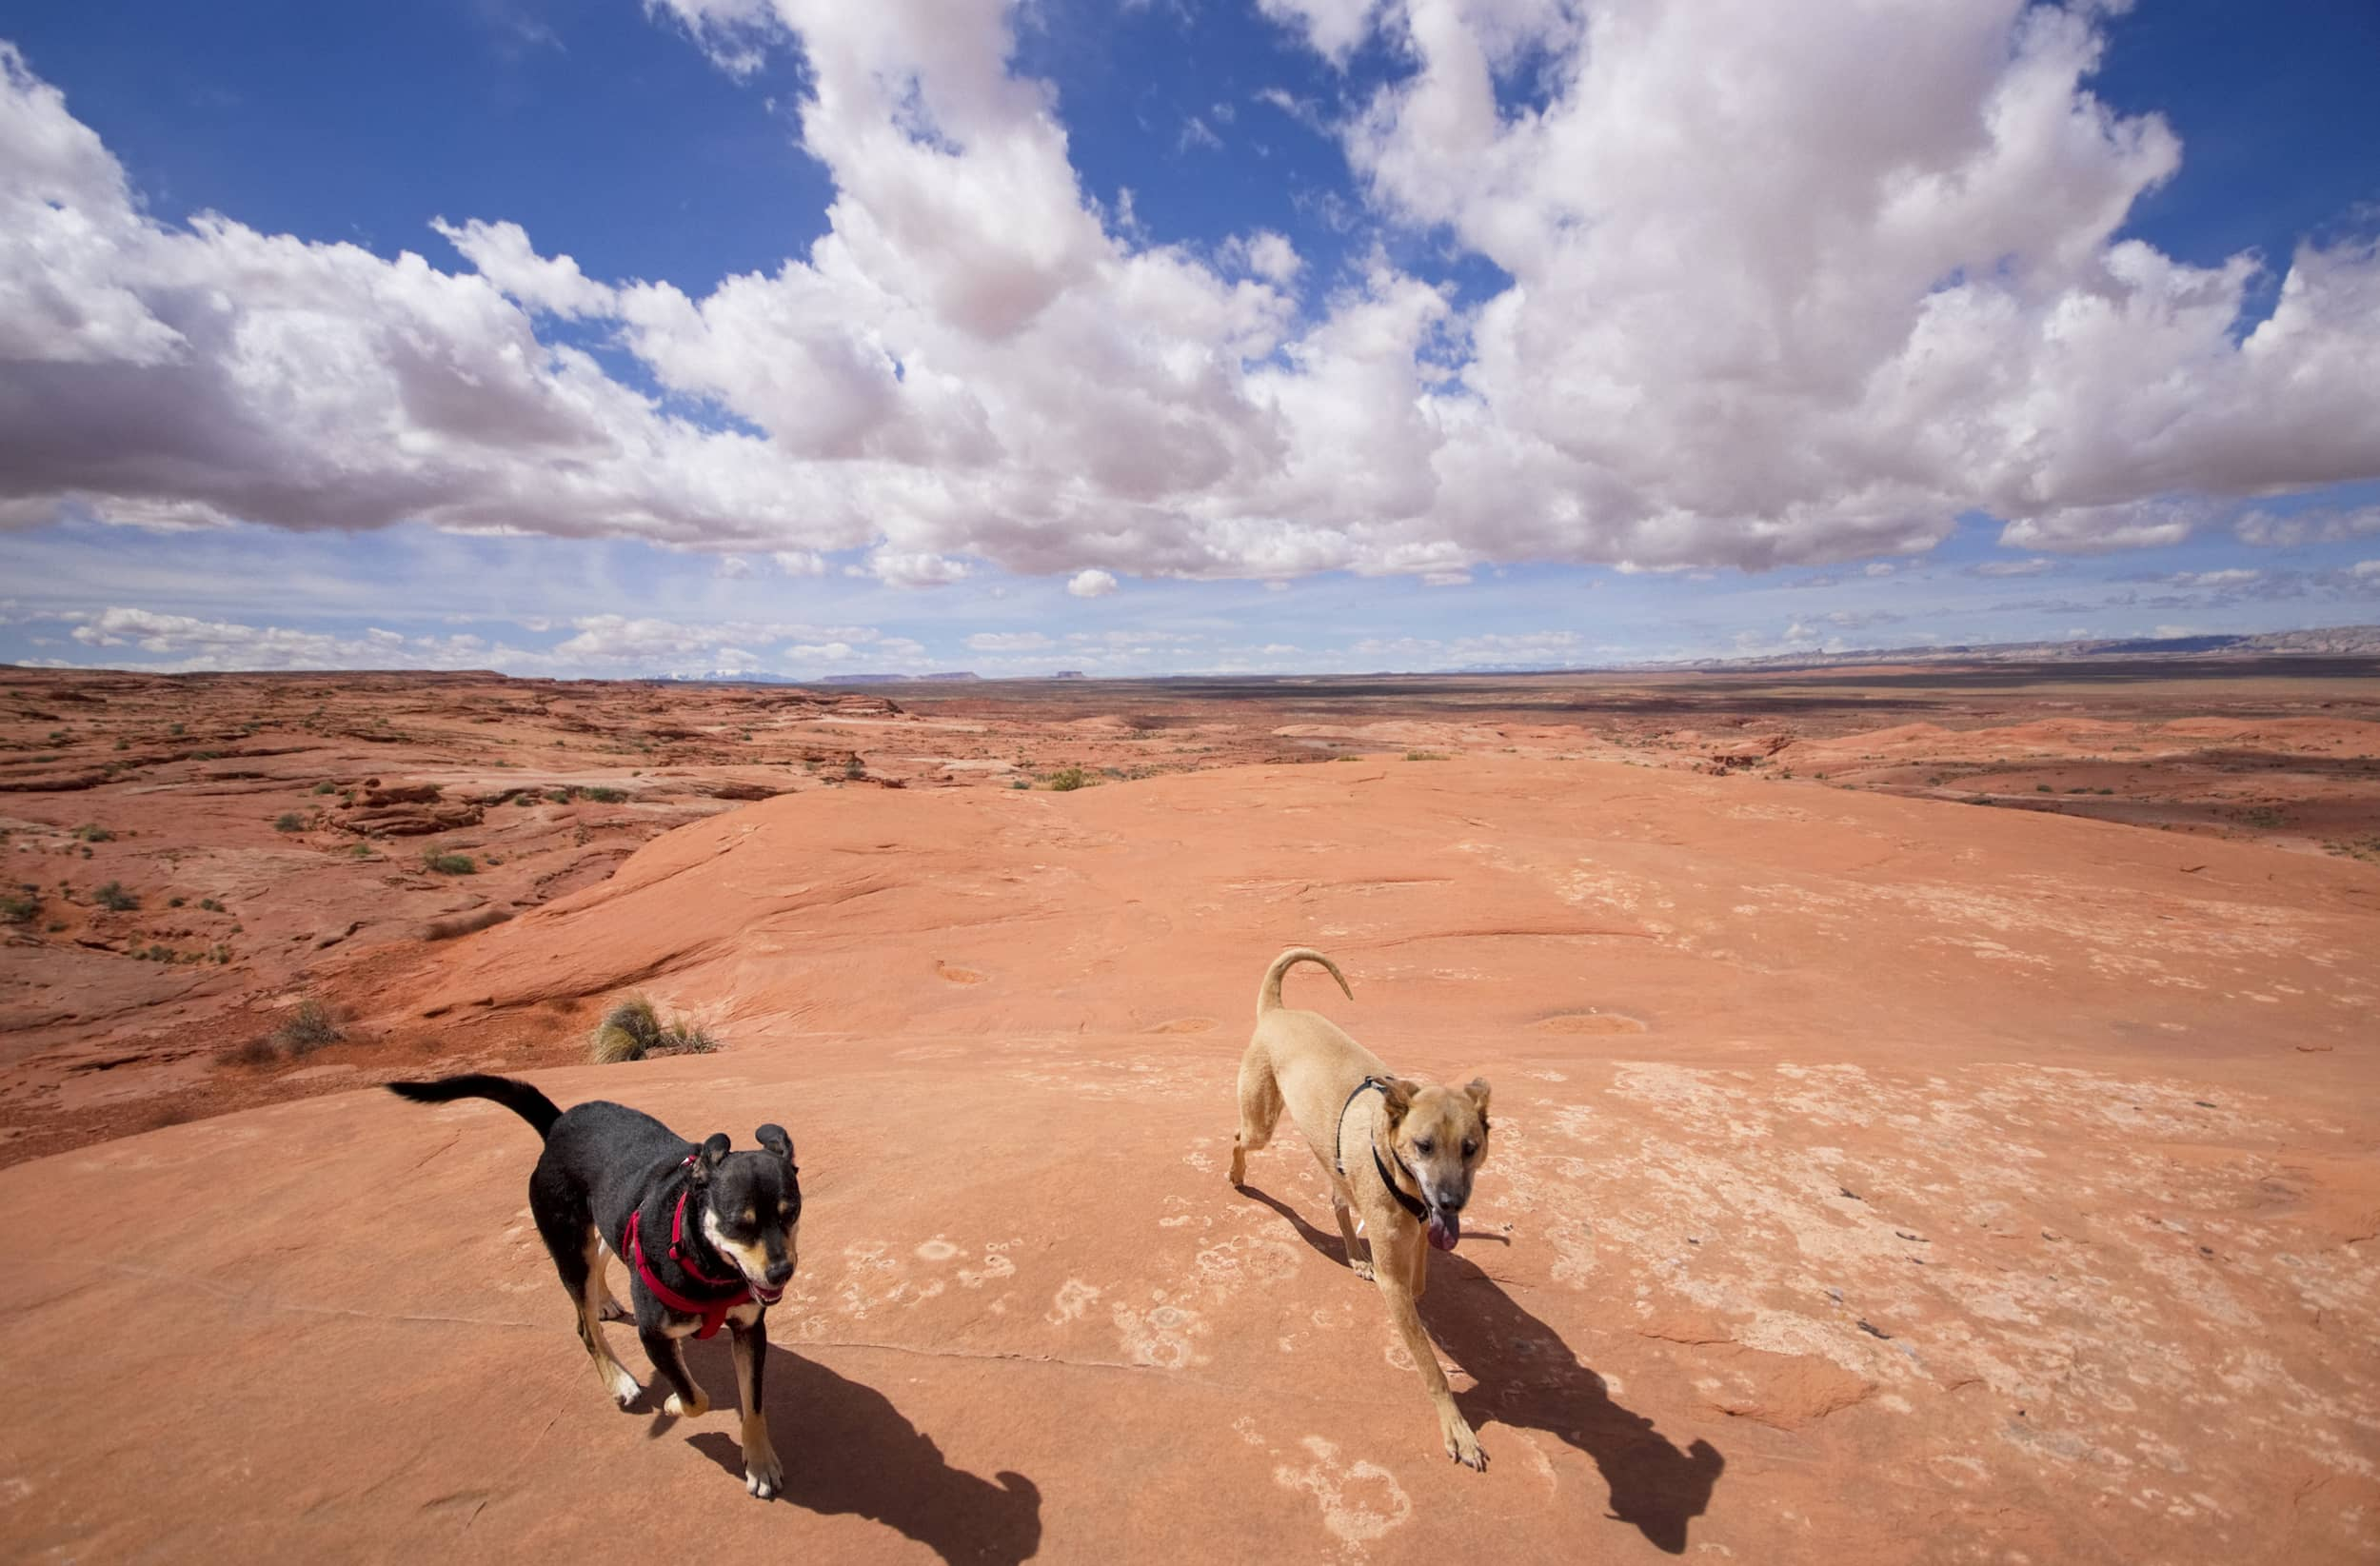 Two large dogs enjoying a day in the desert